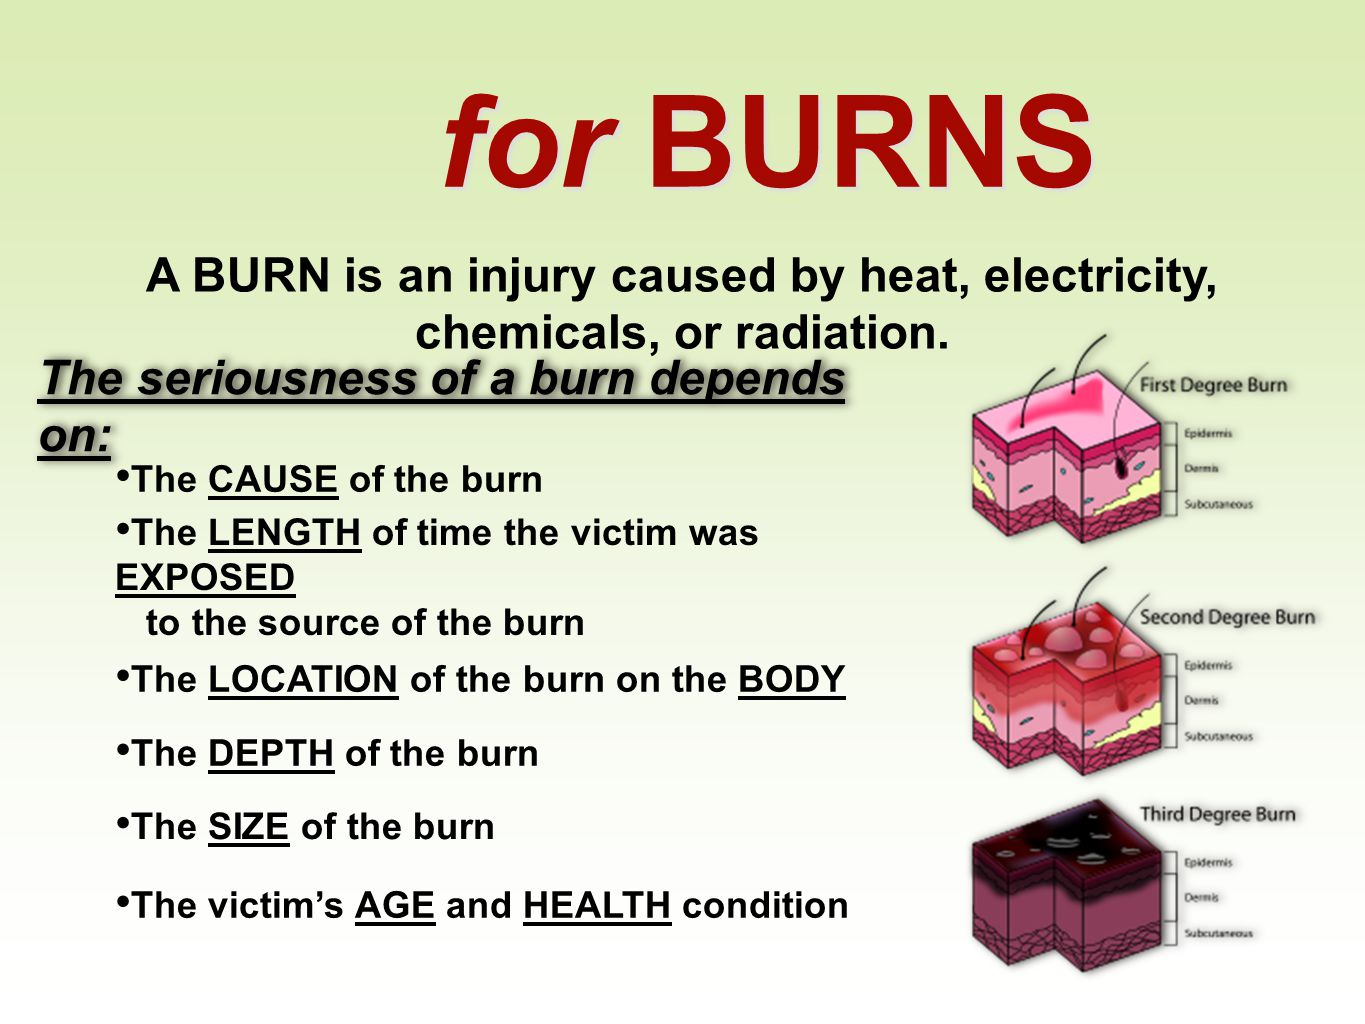 for BURNS A BURN is an injury caused by heat, electricity, chemicals, or radiation. The seriousness of a burn depends on: